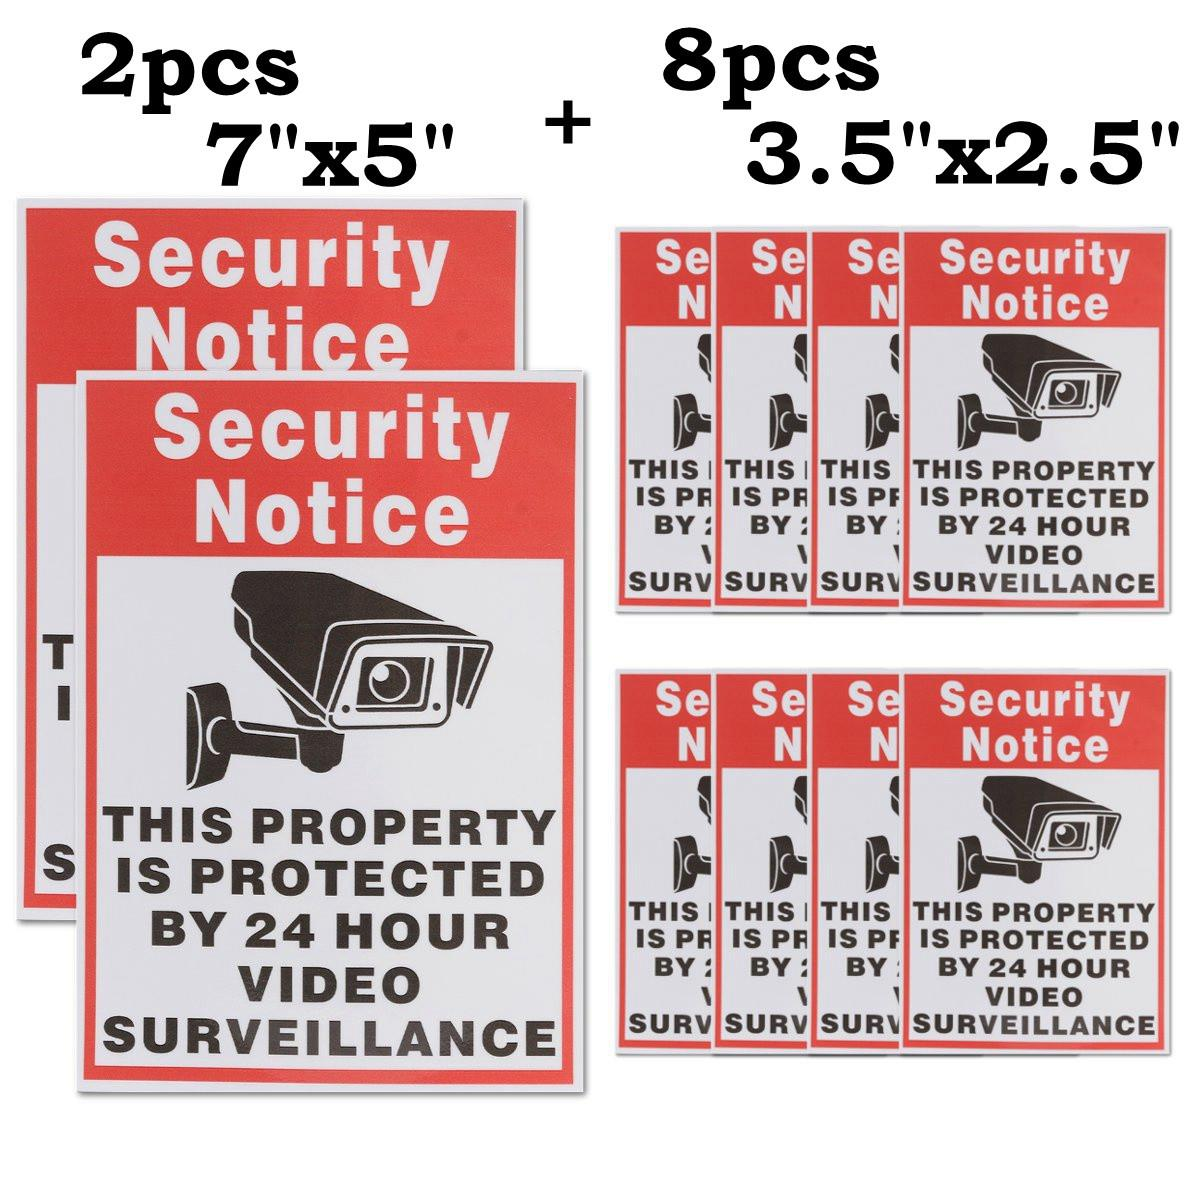 NEW Safurance 10pcs/lot Waterproof Sunscreen PVC Home CCTV Video Surveillance Security Camera Alarm Sticker Warning Decal Signs